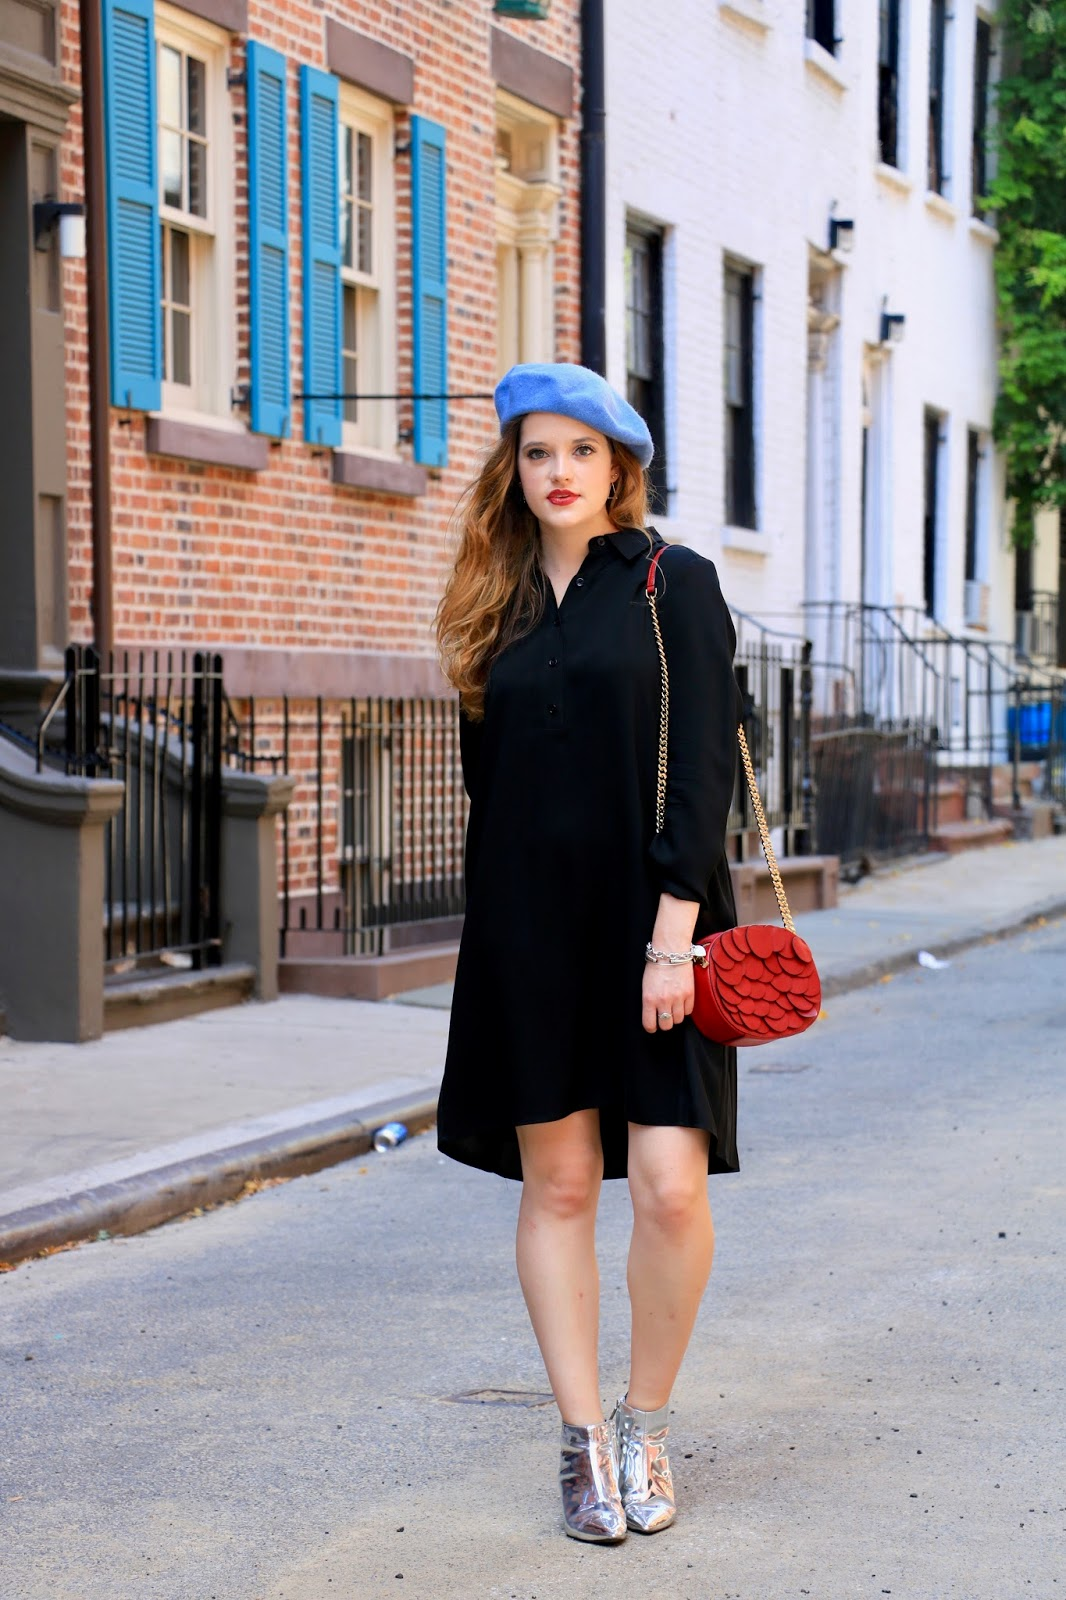 Fashion blogger Kathleen Harper showing off fall street style in NYC